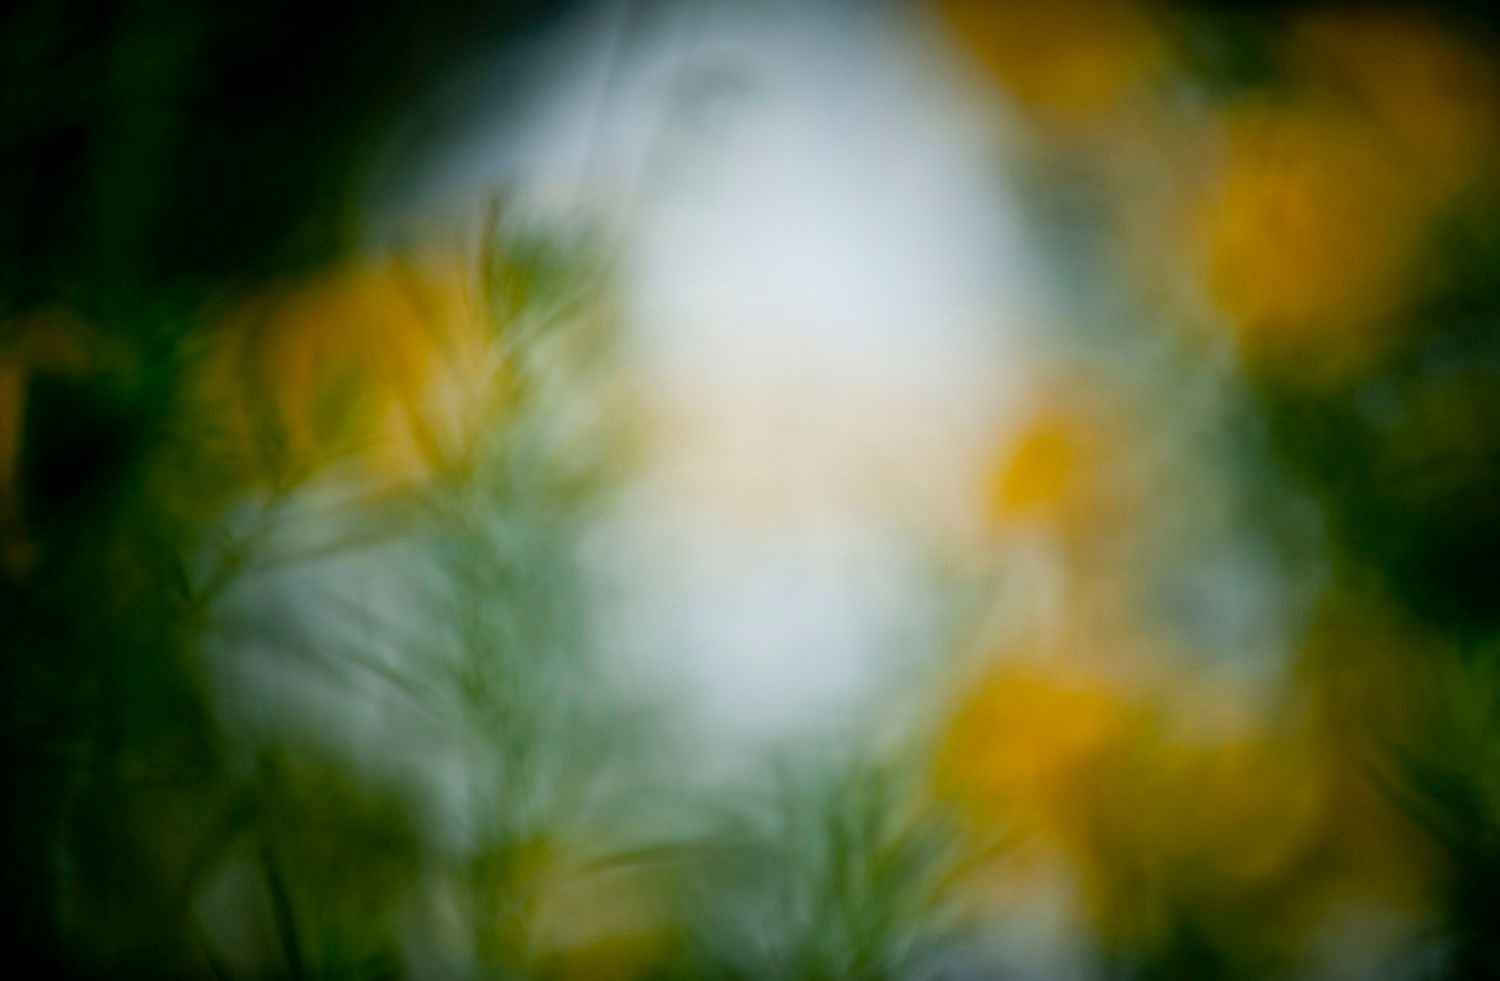 Abstract and Blurred: Yellow and Green Flowers